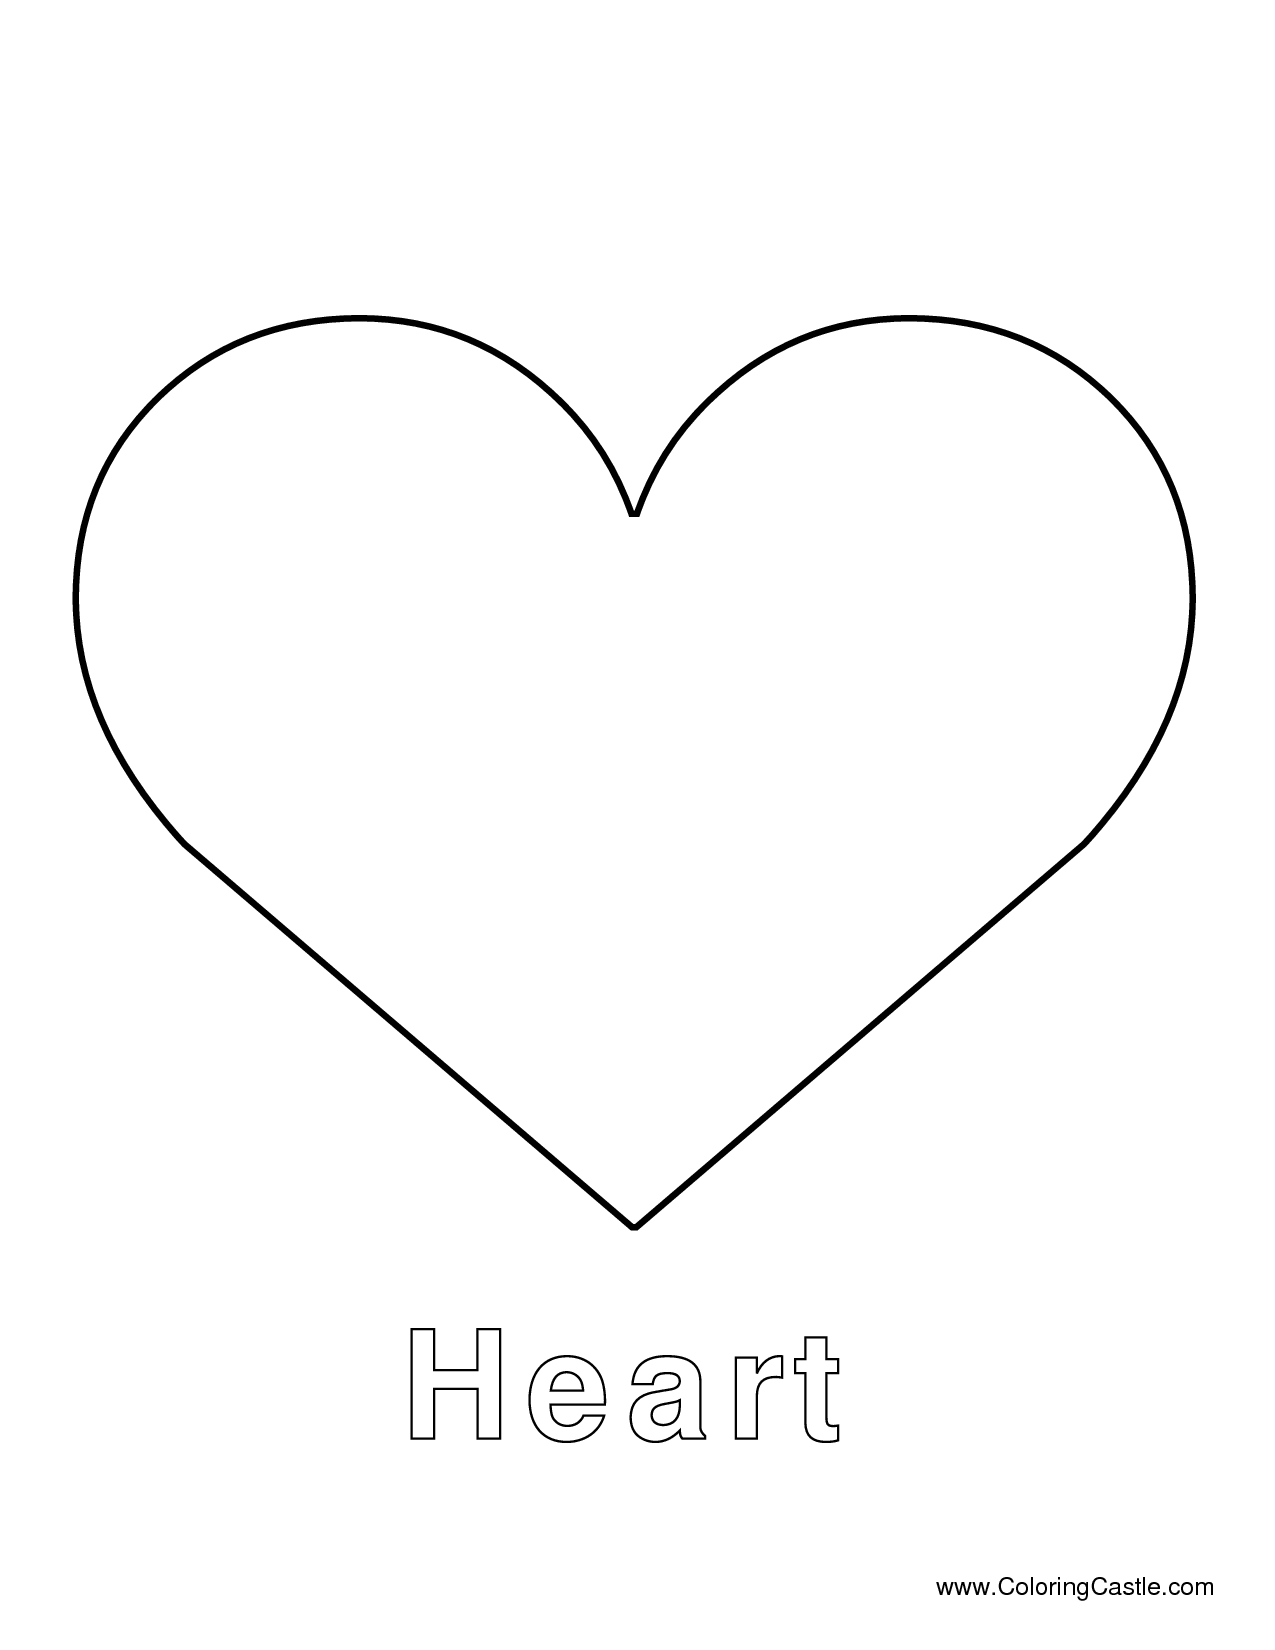 4 Images of Free Printable Heart Template